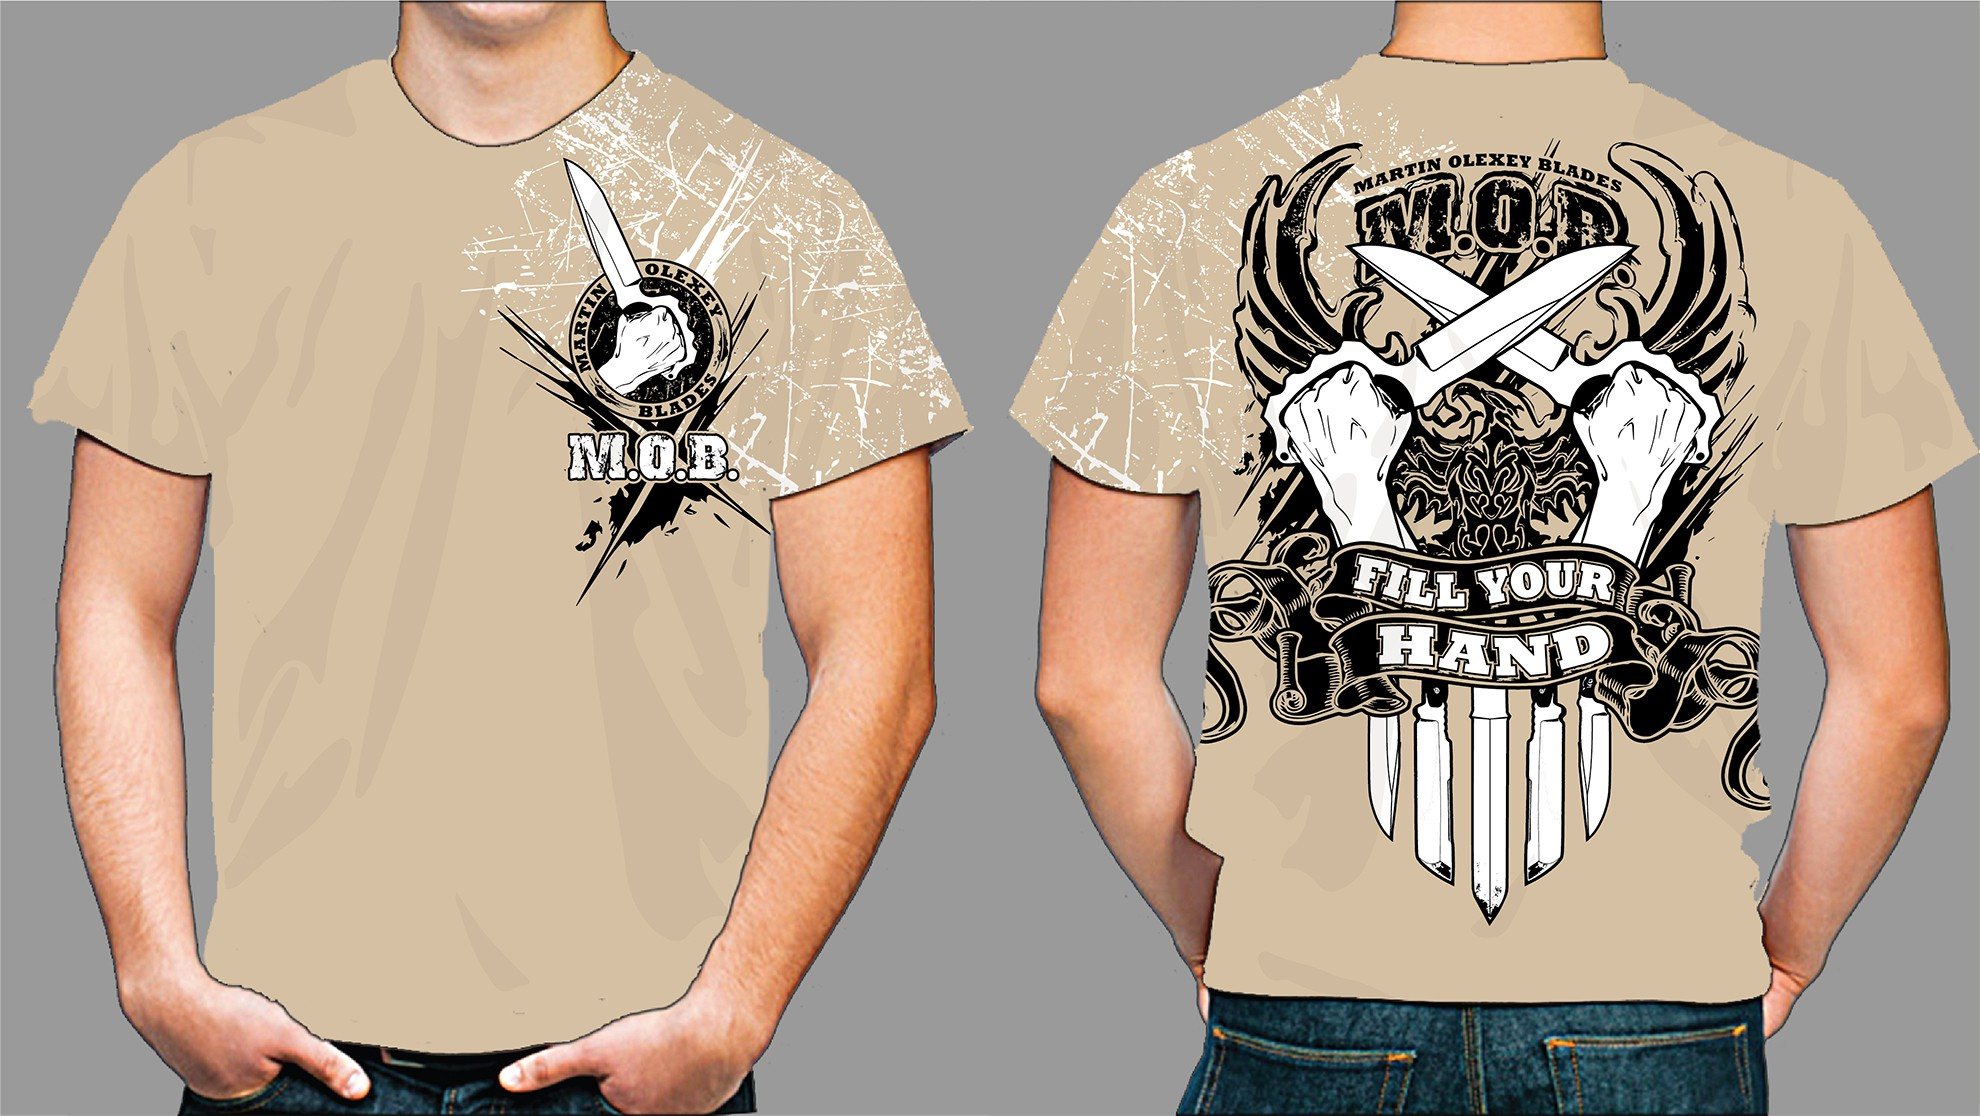 Create a T-Shirt design that conveys the aggressive design style of a custom Knife Maker!